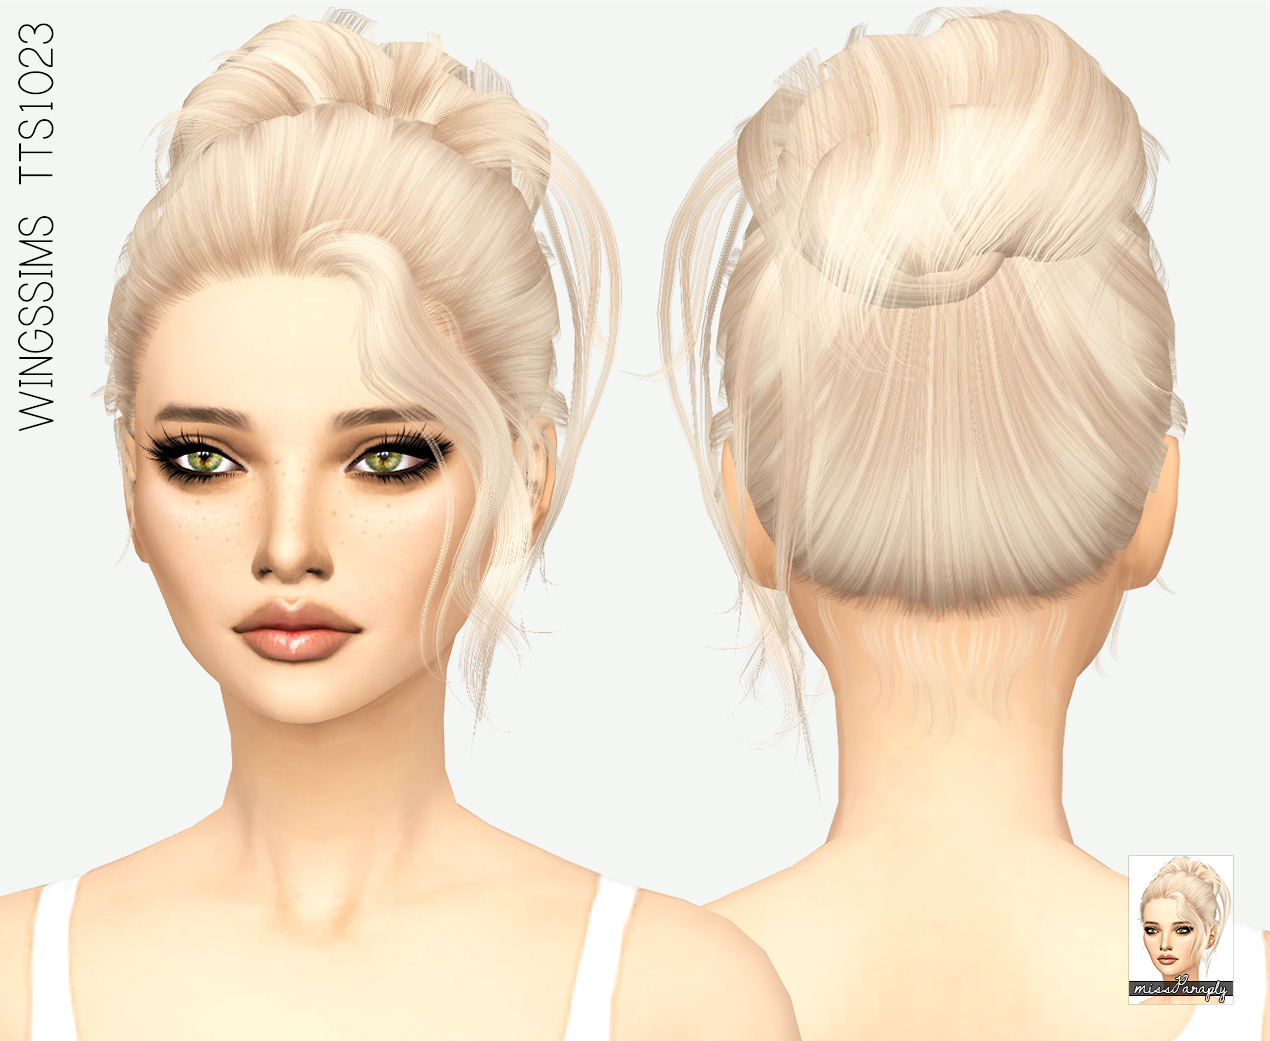 Sims 4 Hairs Miss Paraply Wingssims TTS1023